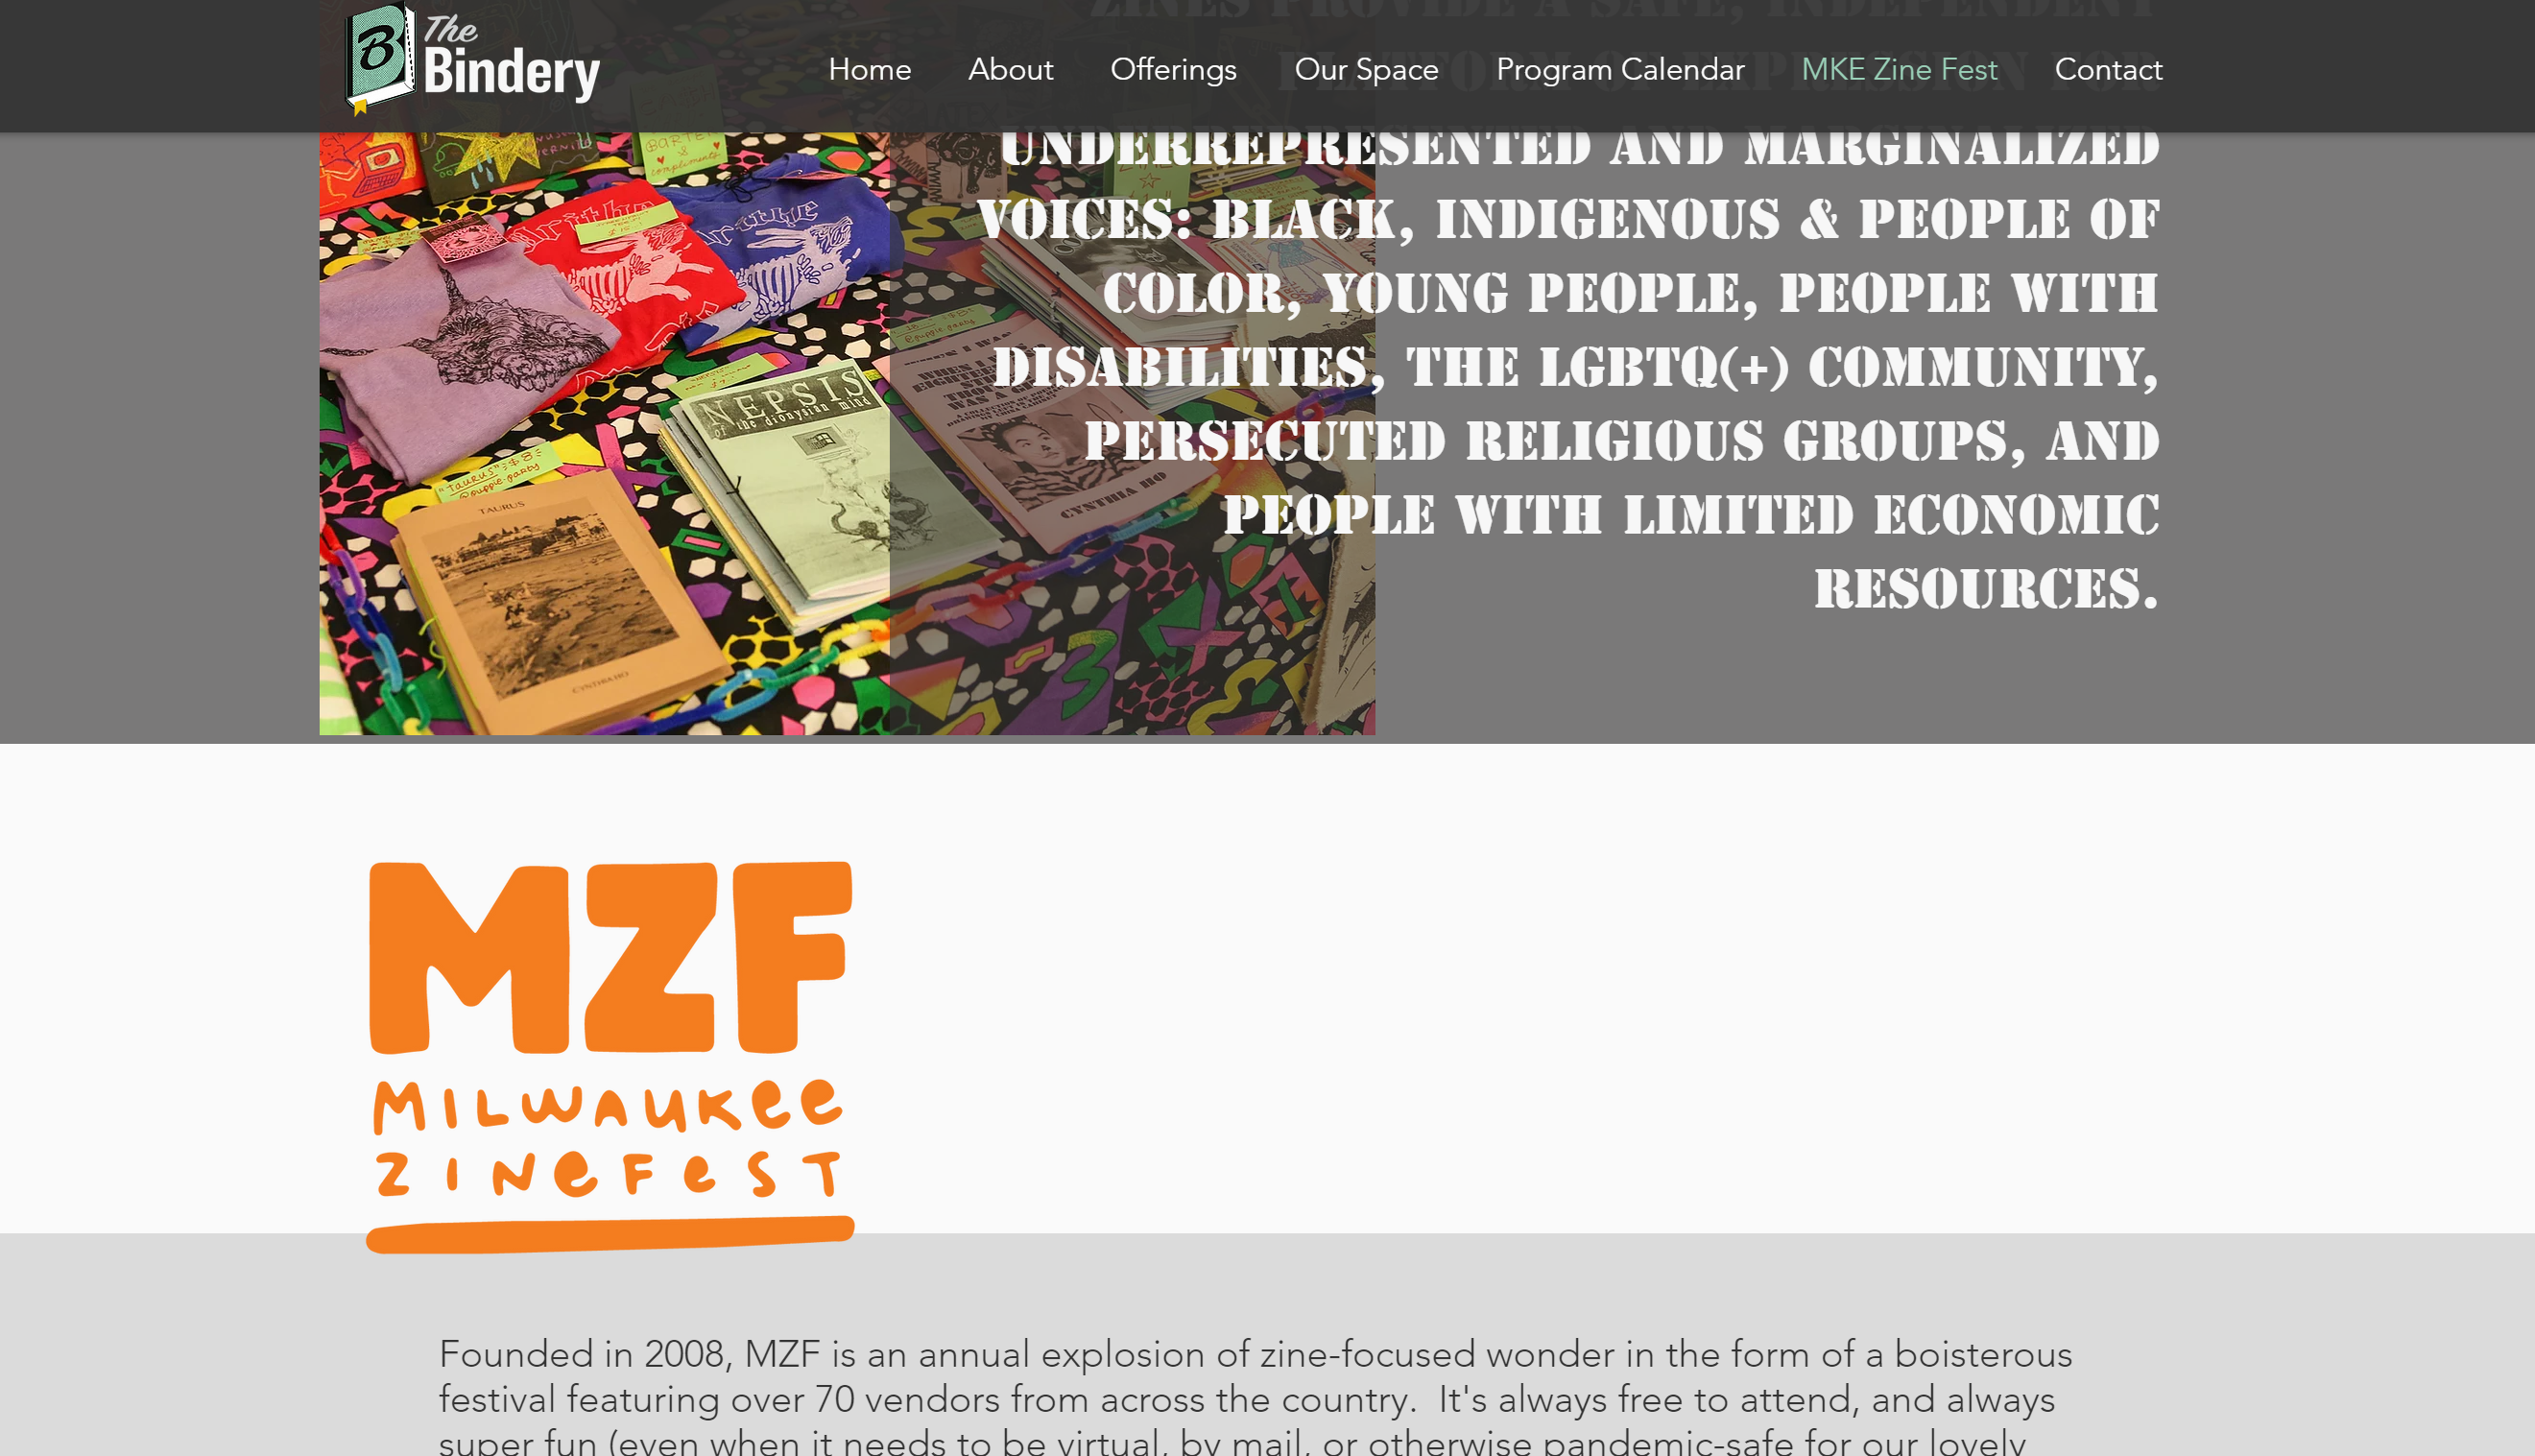 A screenshot of the Milwaukee Zine Fest's About section on their official page